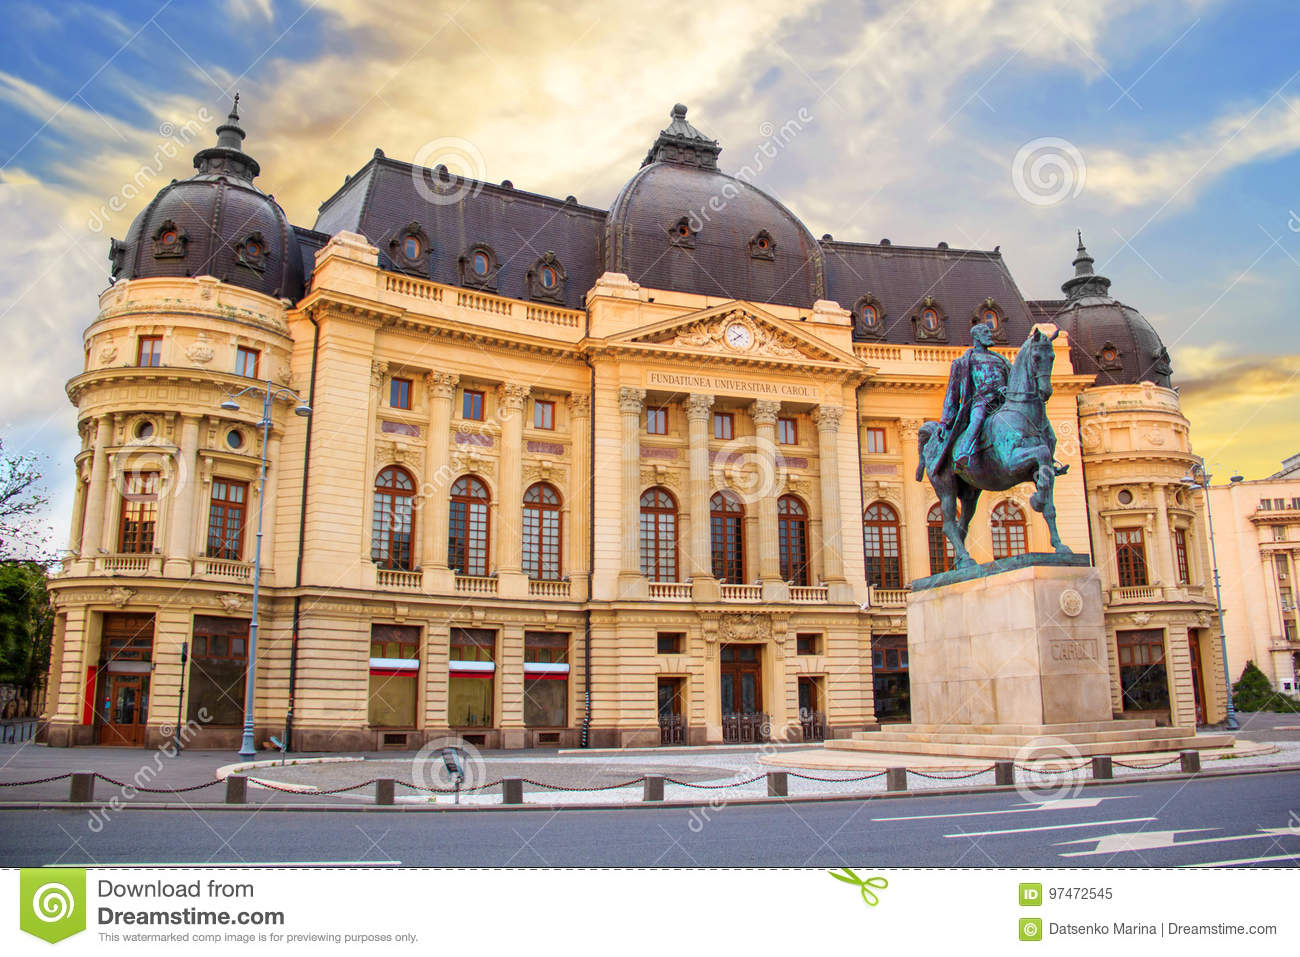 Beautiful view of the building of the Central University Library with equestrian monument to King Karol I in Bucharest, Romania